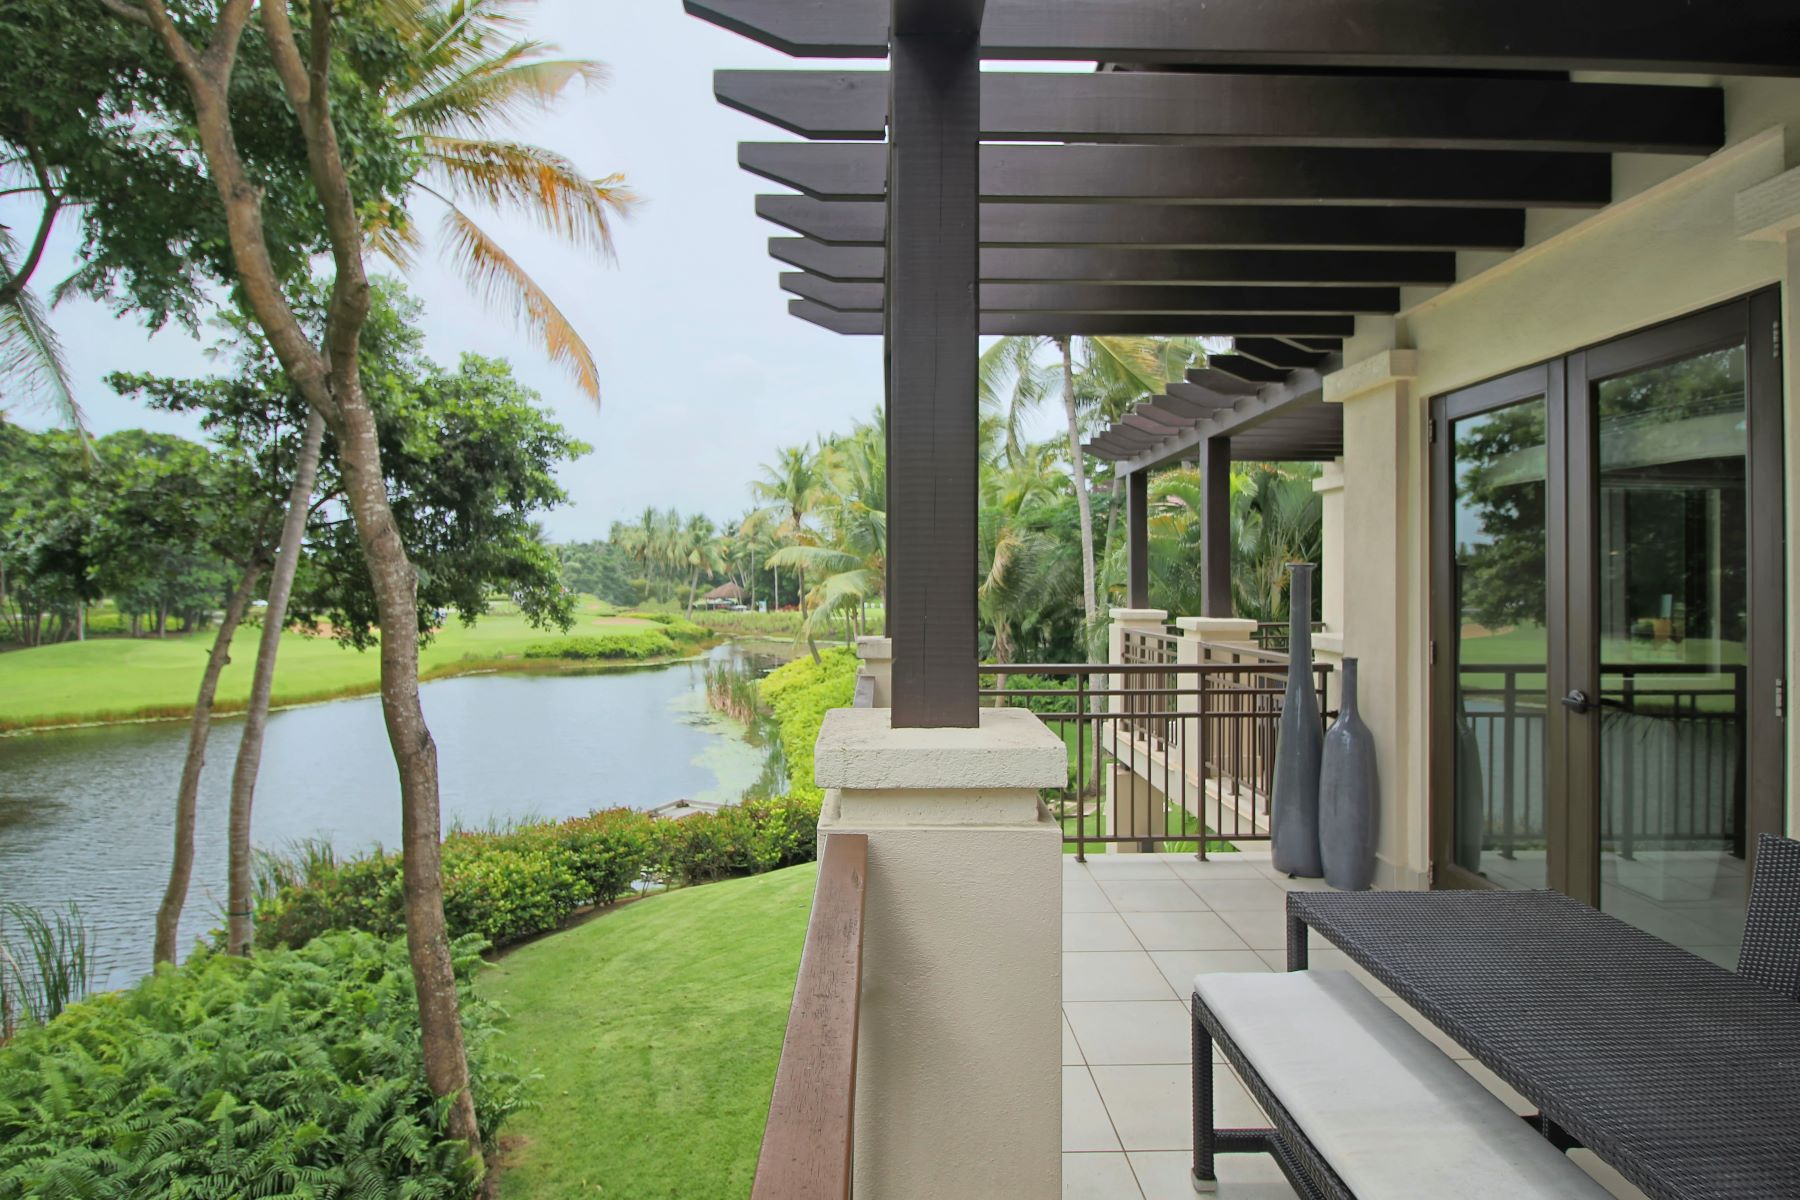 Additional photo for property listing at Lakefront with Golf Views Villa State Rd. 187, Km. 4.2 Apt. 1206 Bahia Beach, Puerto Rico 00745 Пуэрто-Рико